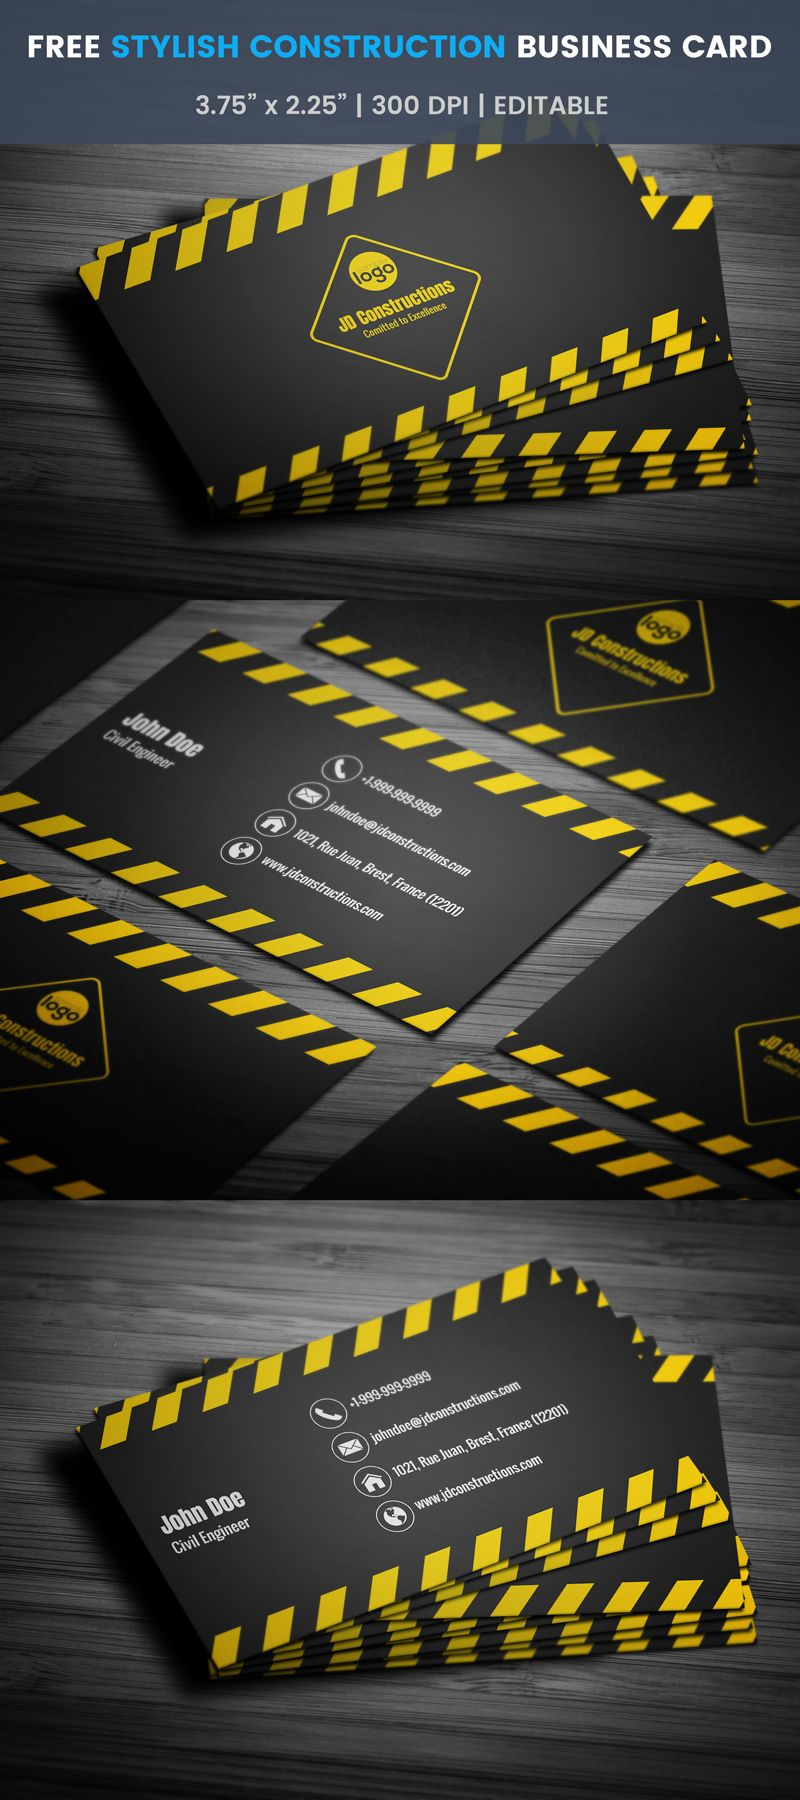 Free stylish civil engineer business card business cards card free stylish civil engineer business card template reheart Image collections